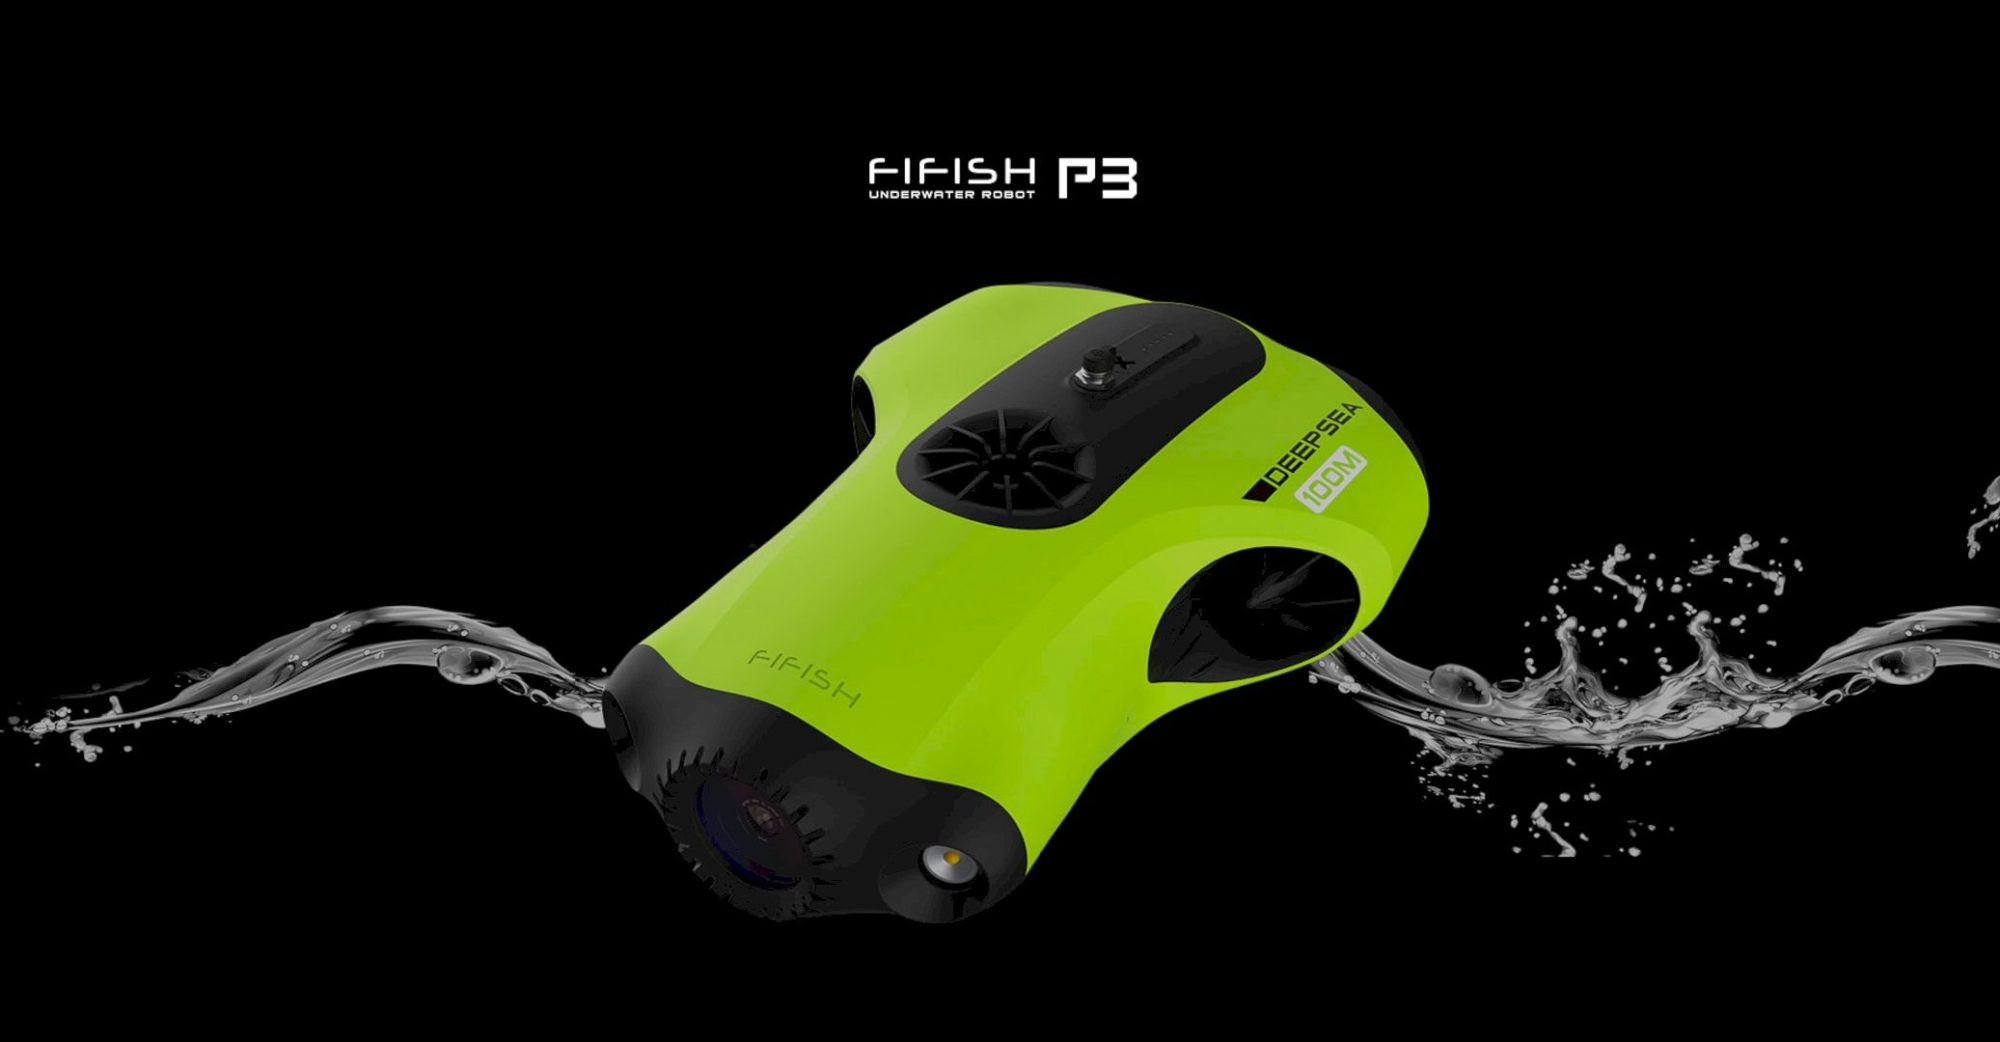 Fifish P3: First Truly Professional Underwater Robot